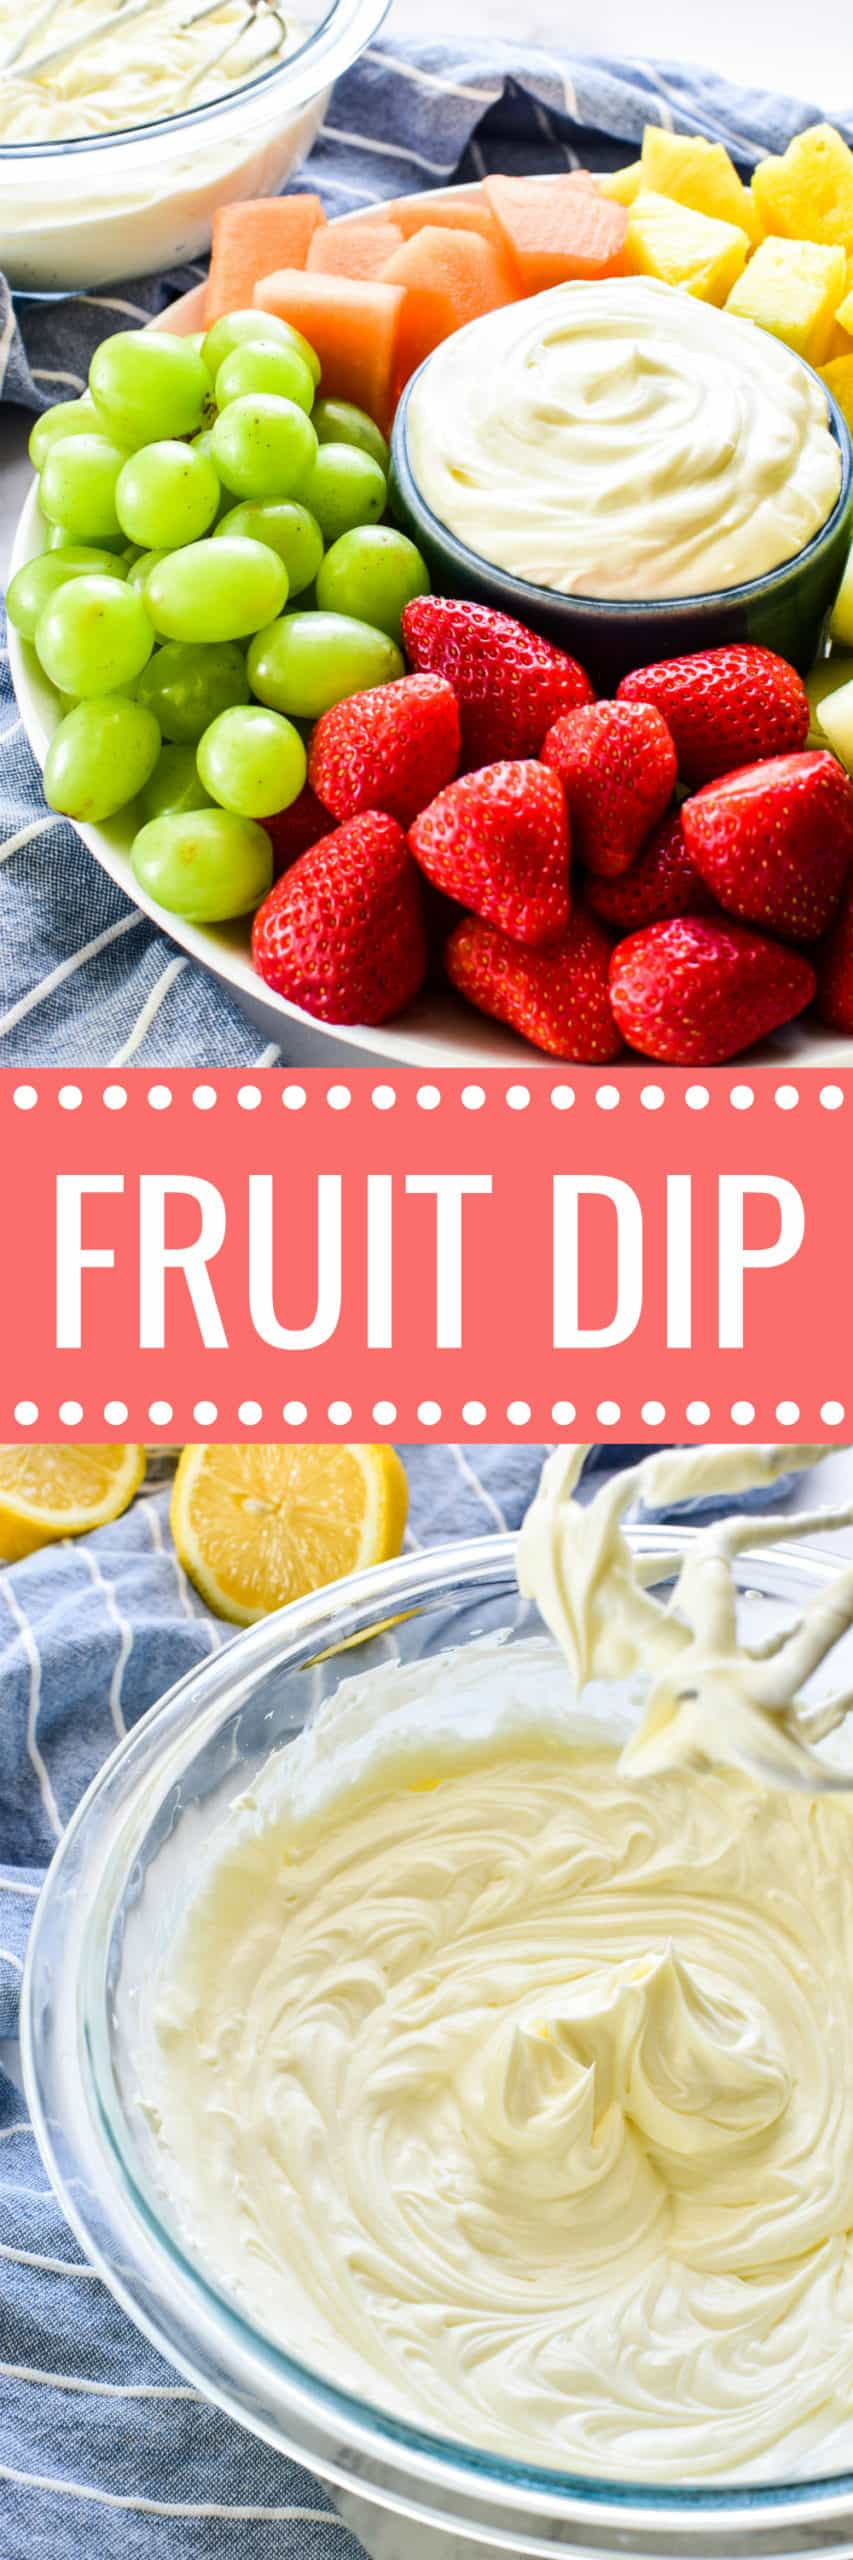 Collage image of fruit platter and dip in mixing bowl